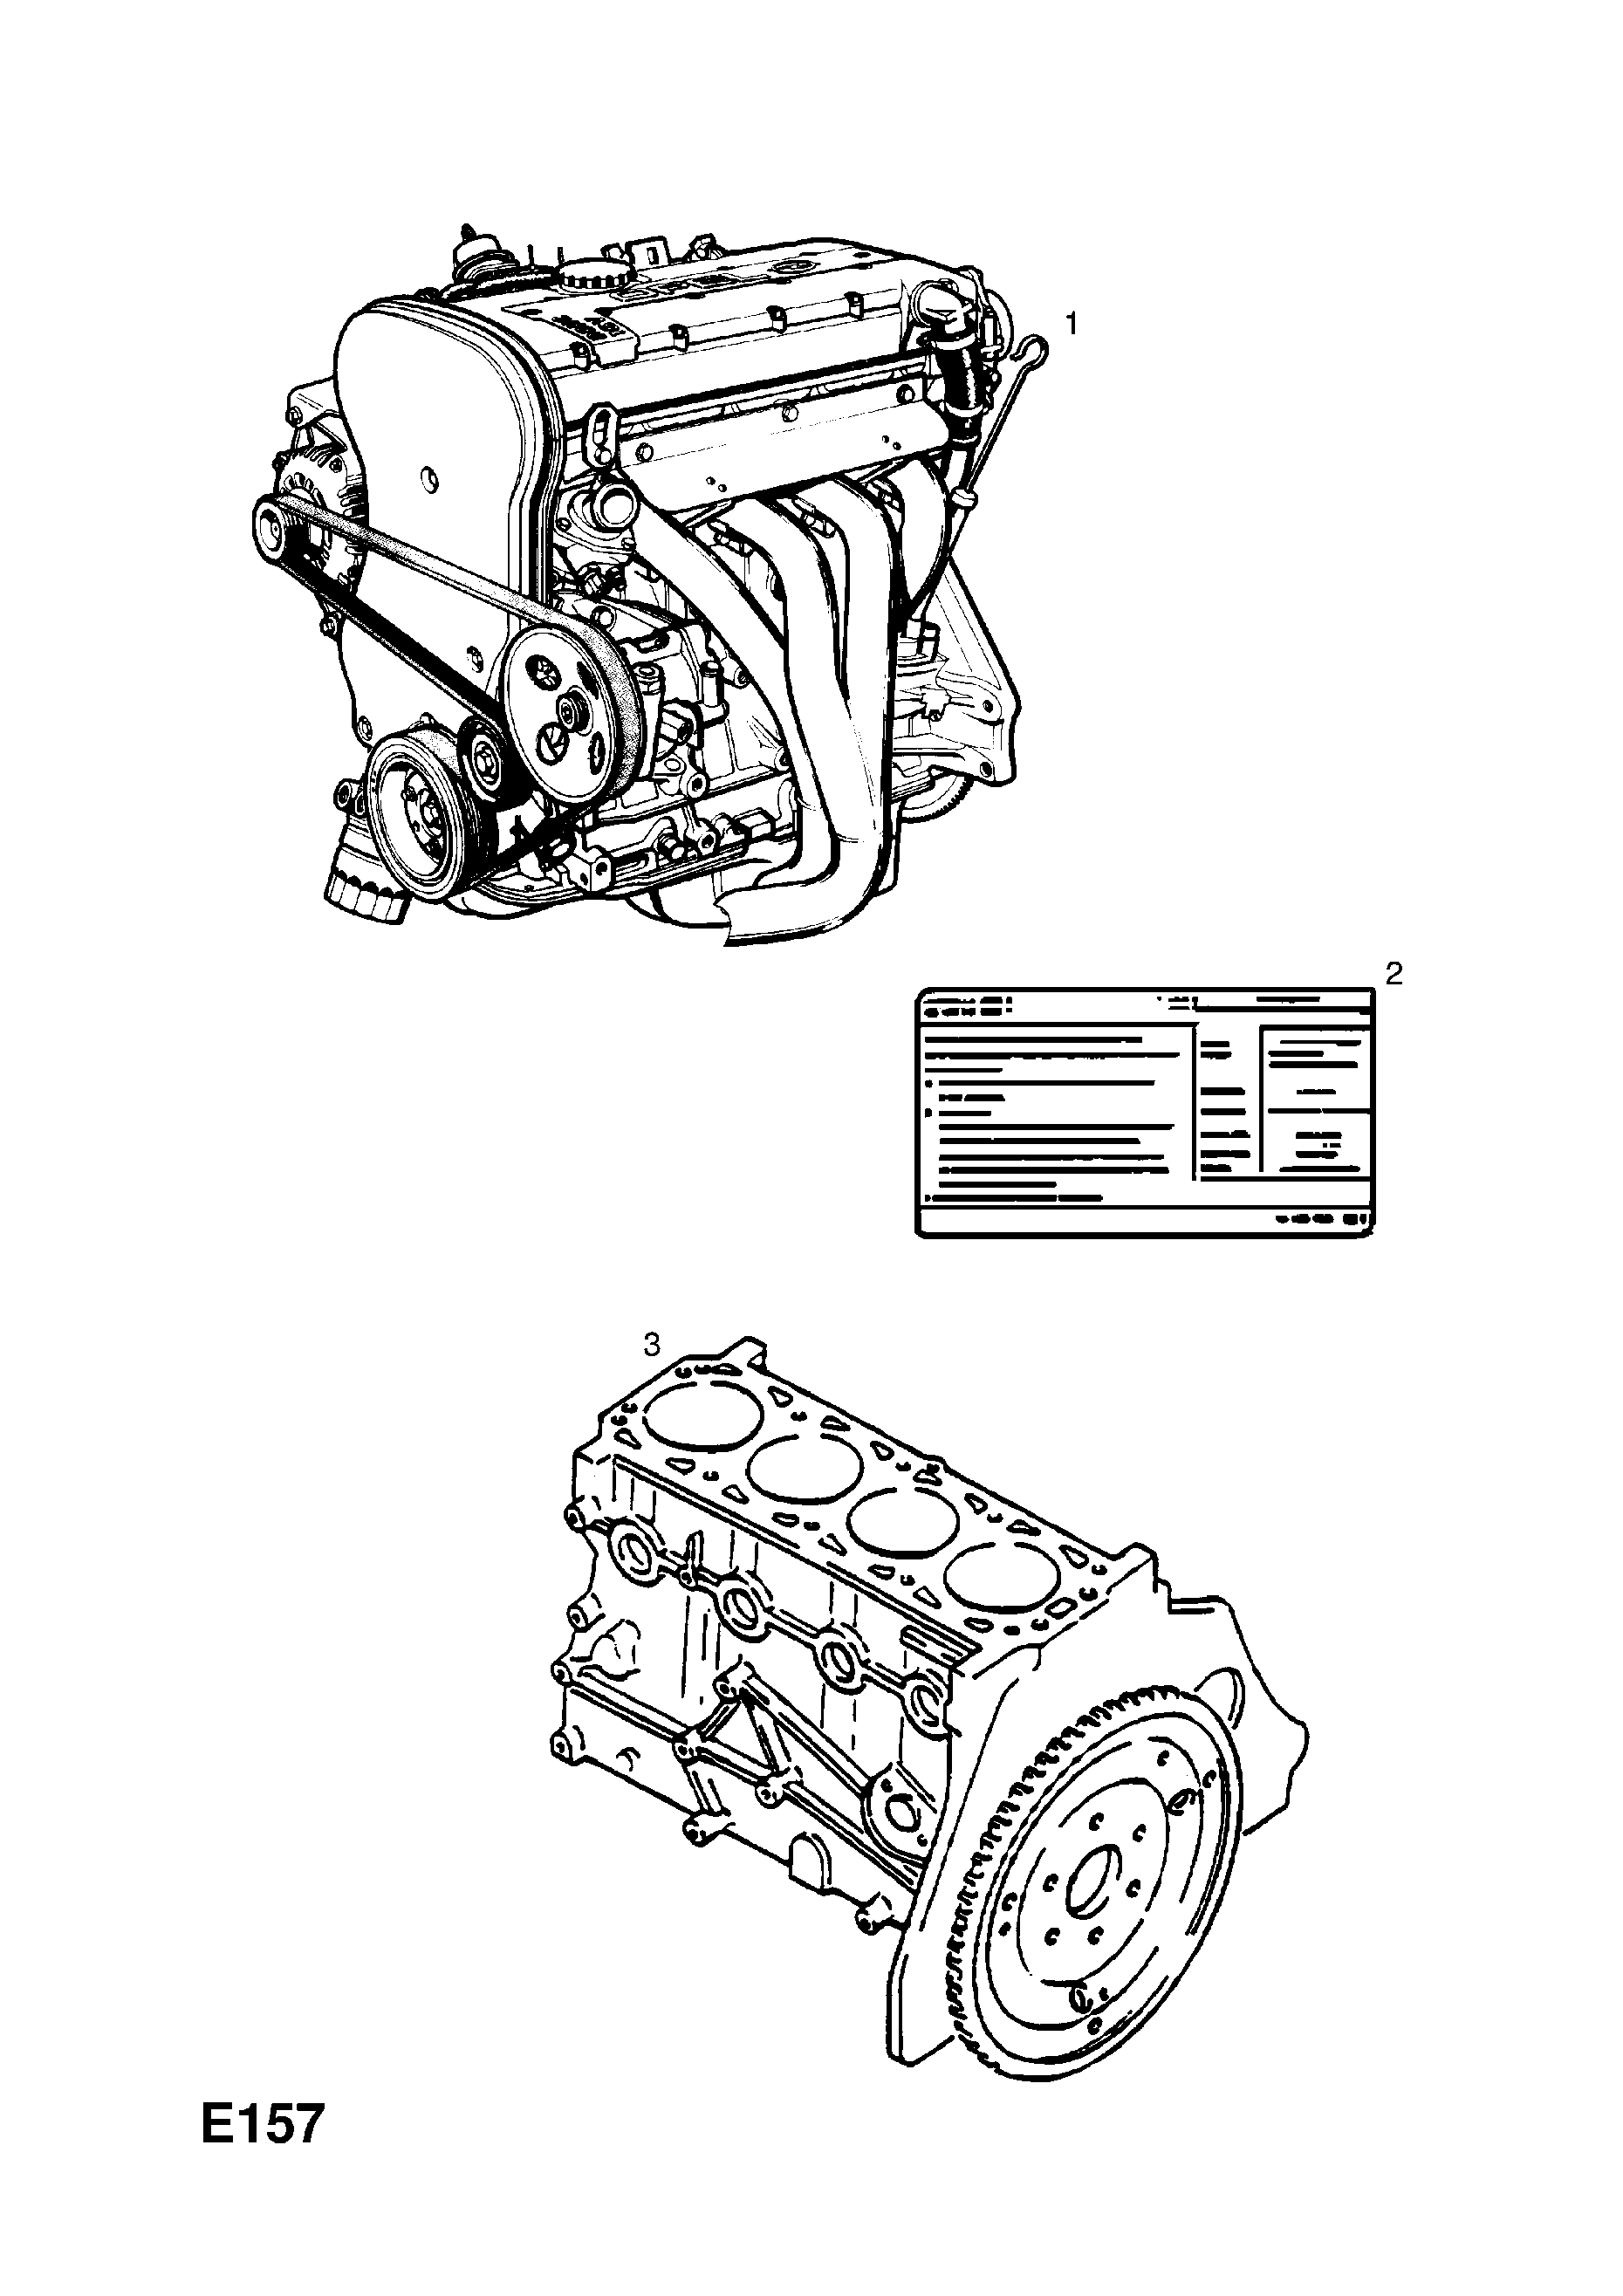 ENGINE ASSEMBLY [MANUAL TRANSMISSION] OPEL ASTRA-F